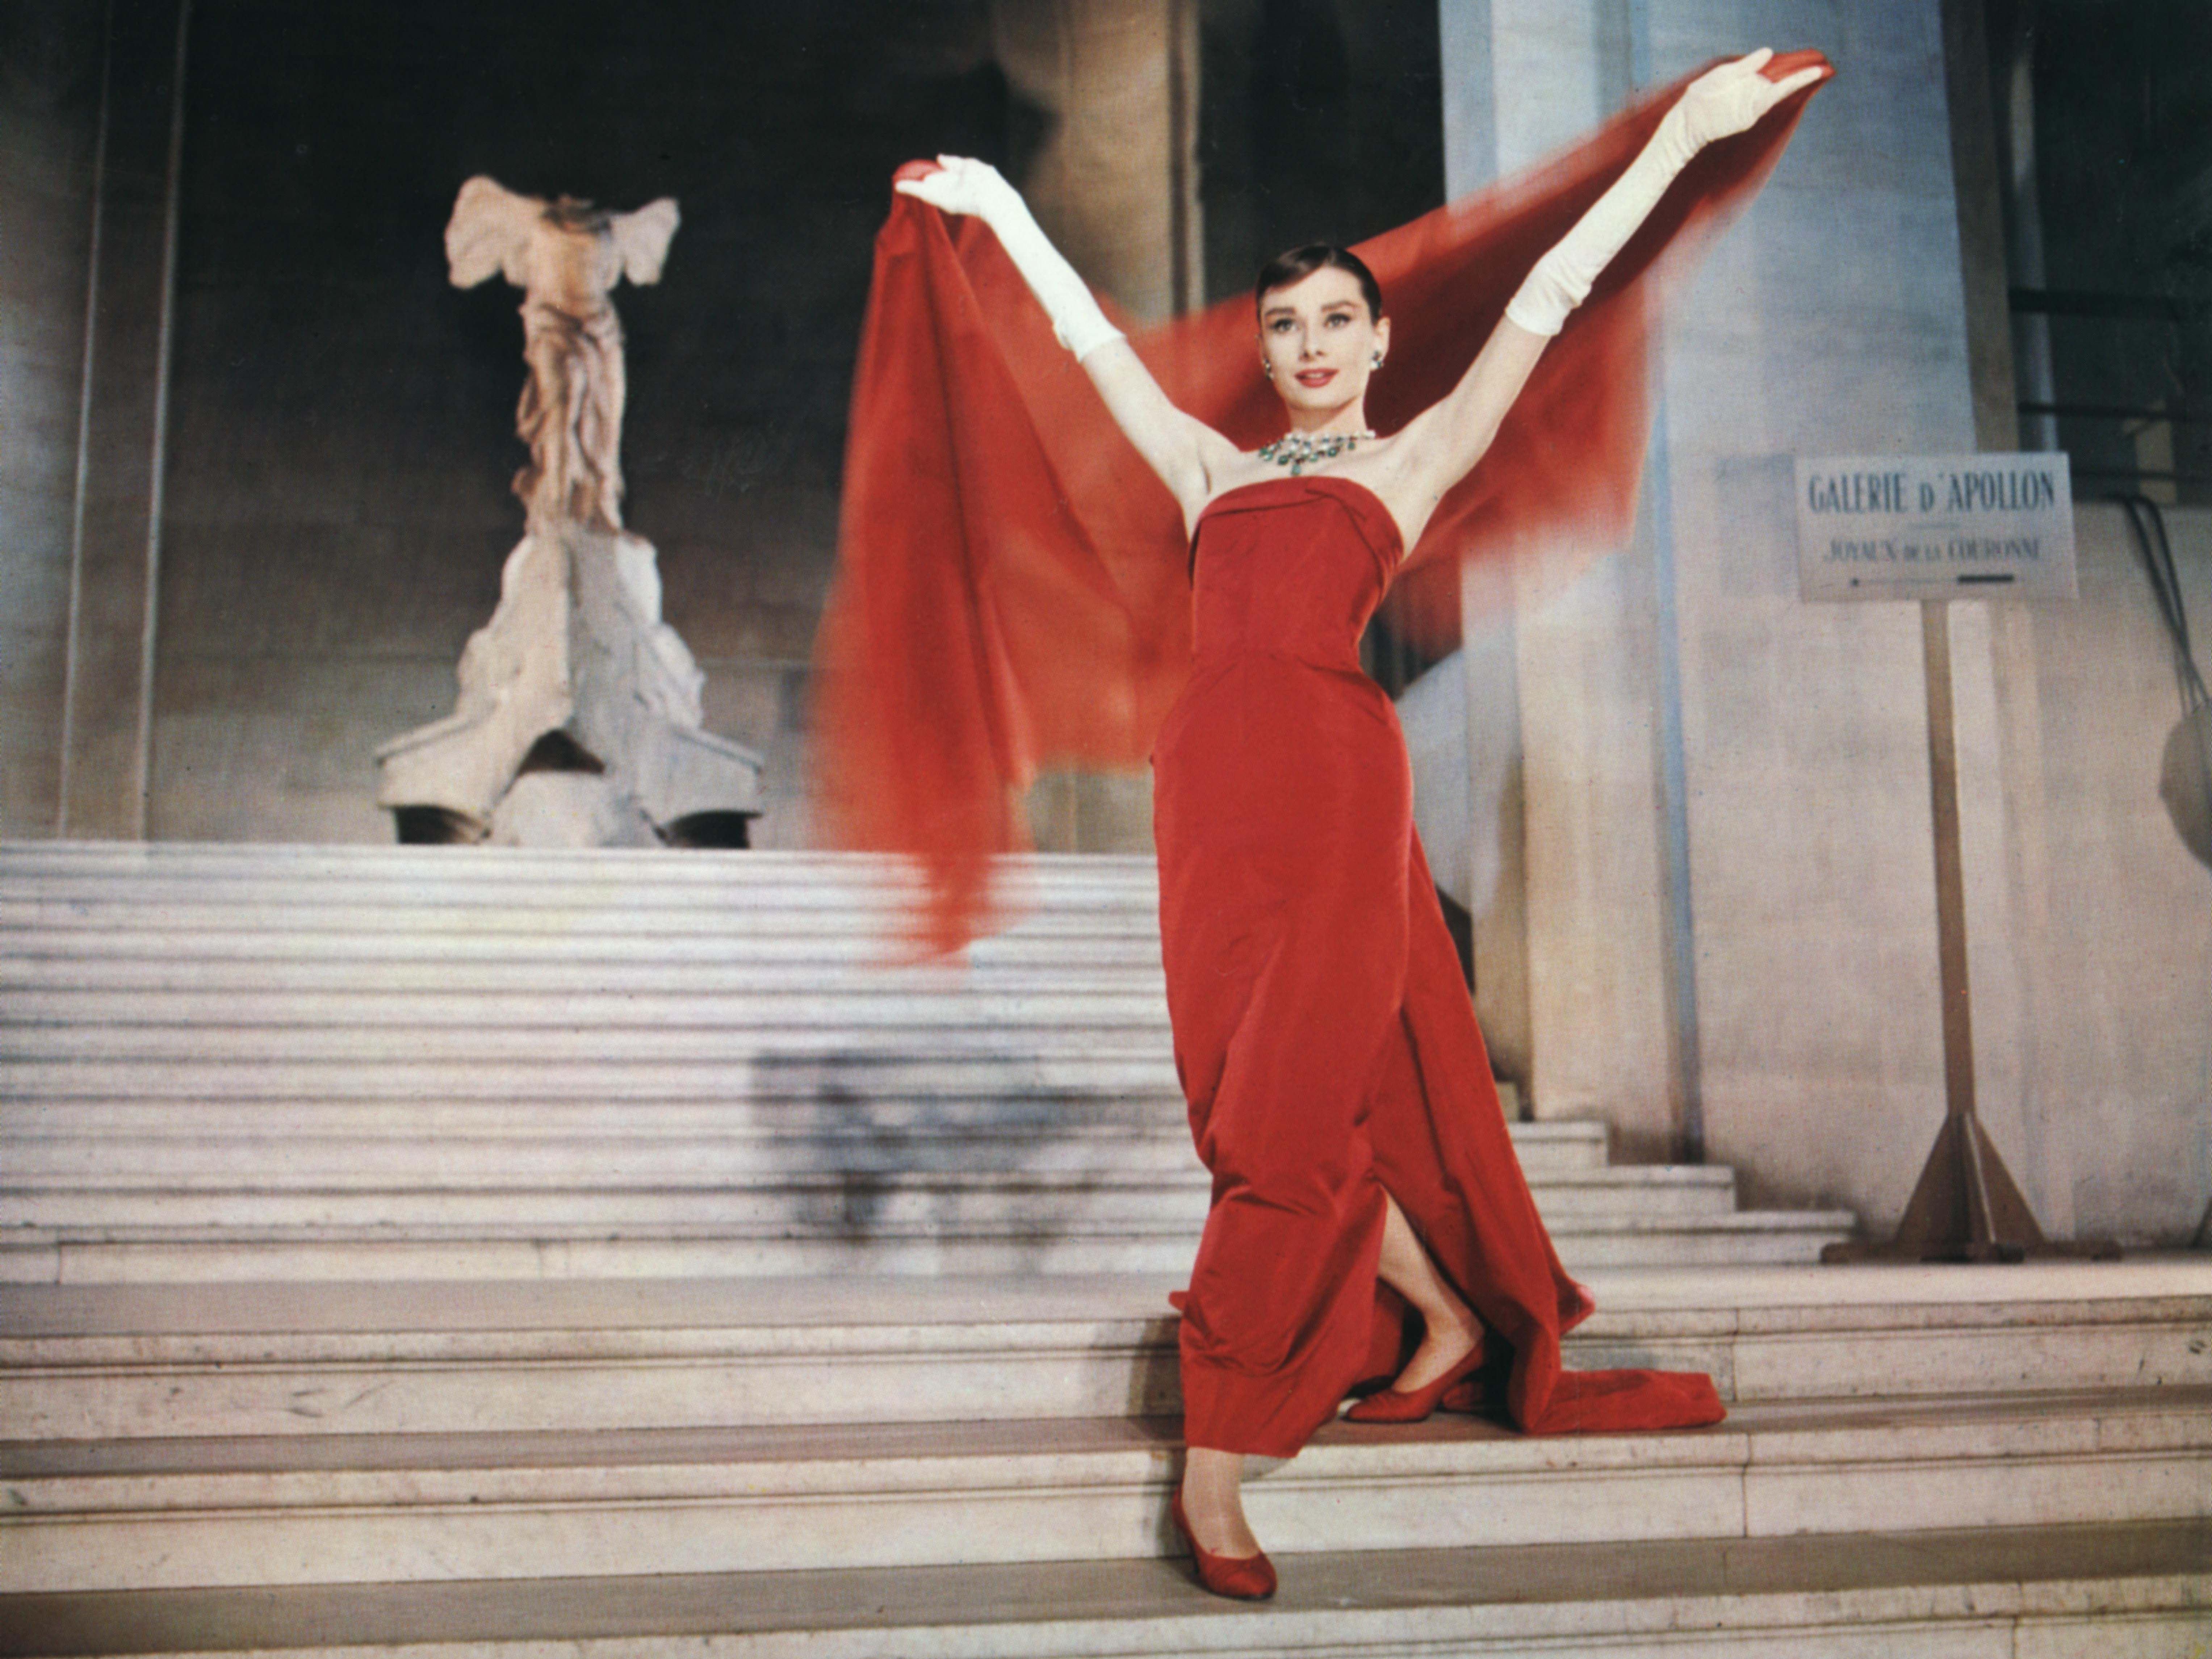 Audrey Hepburn TV series: everything you need to know